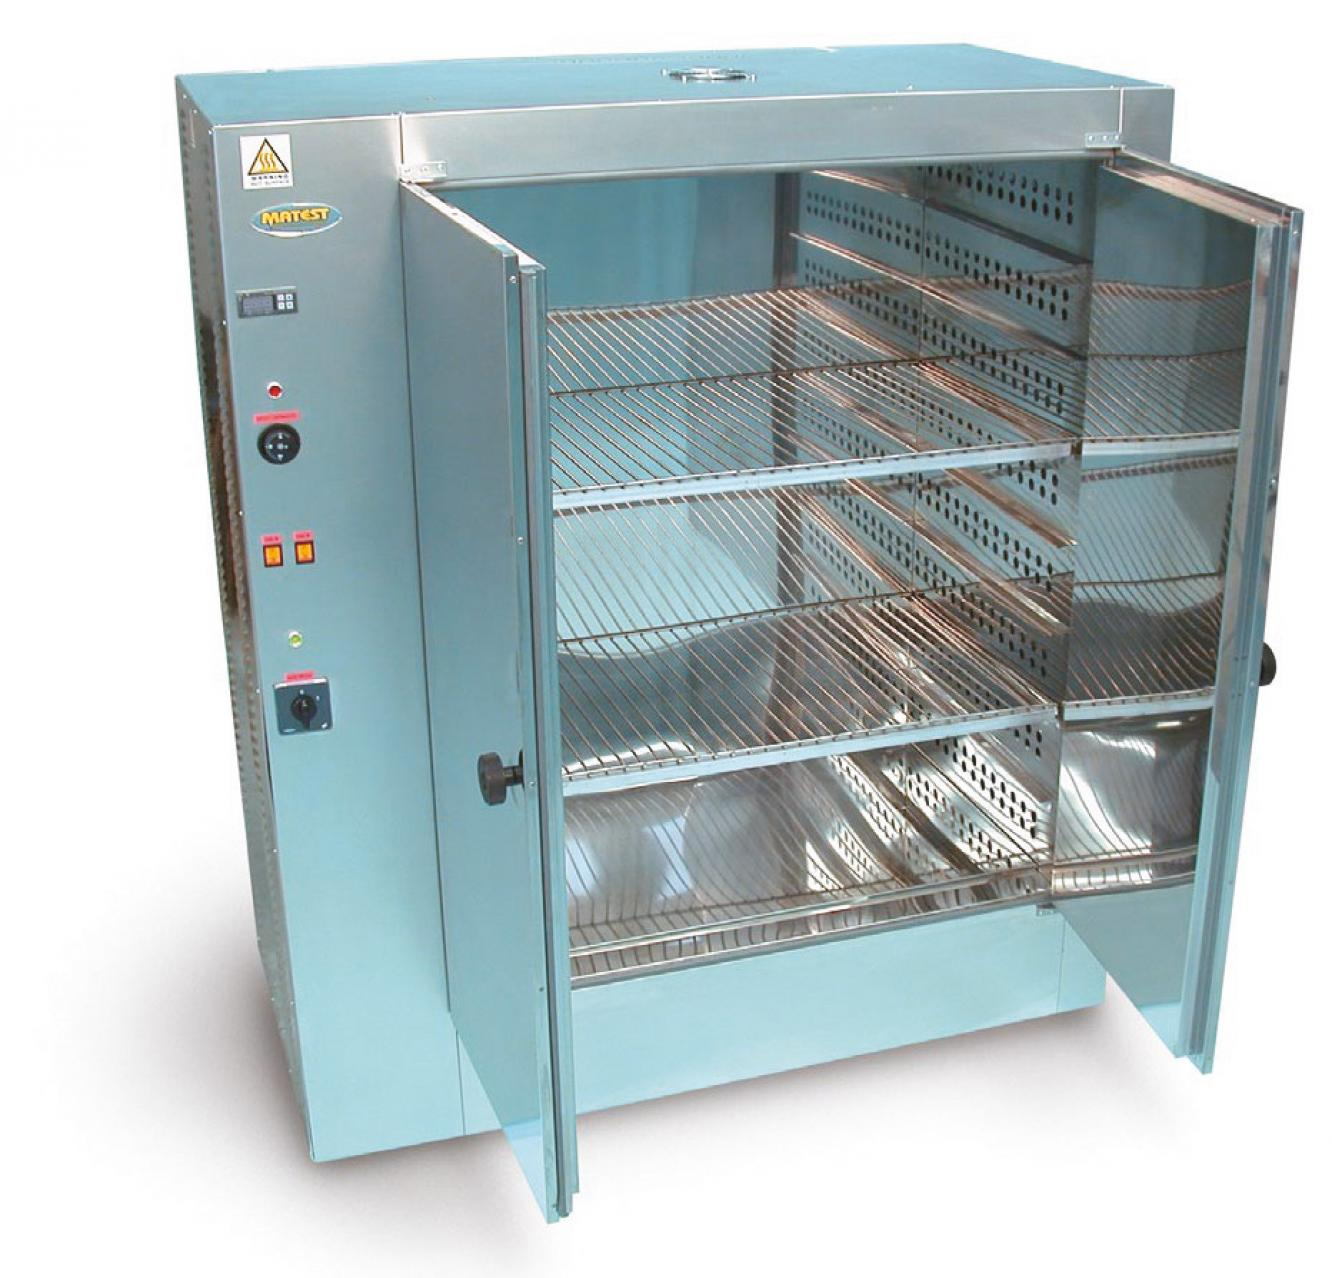 High Uniformity Ovens